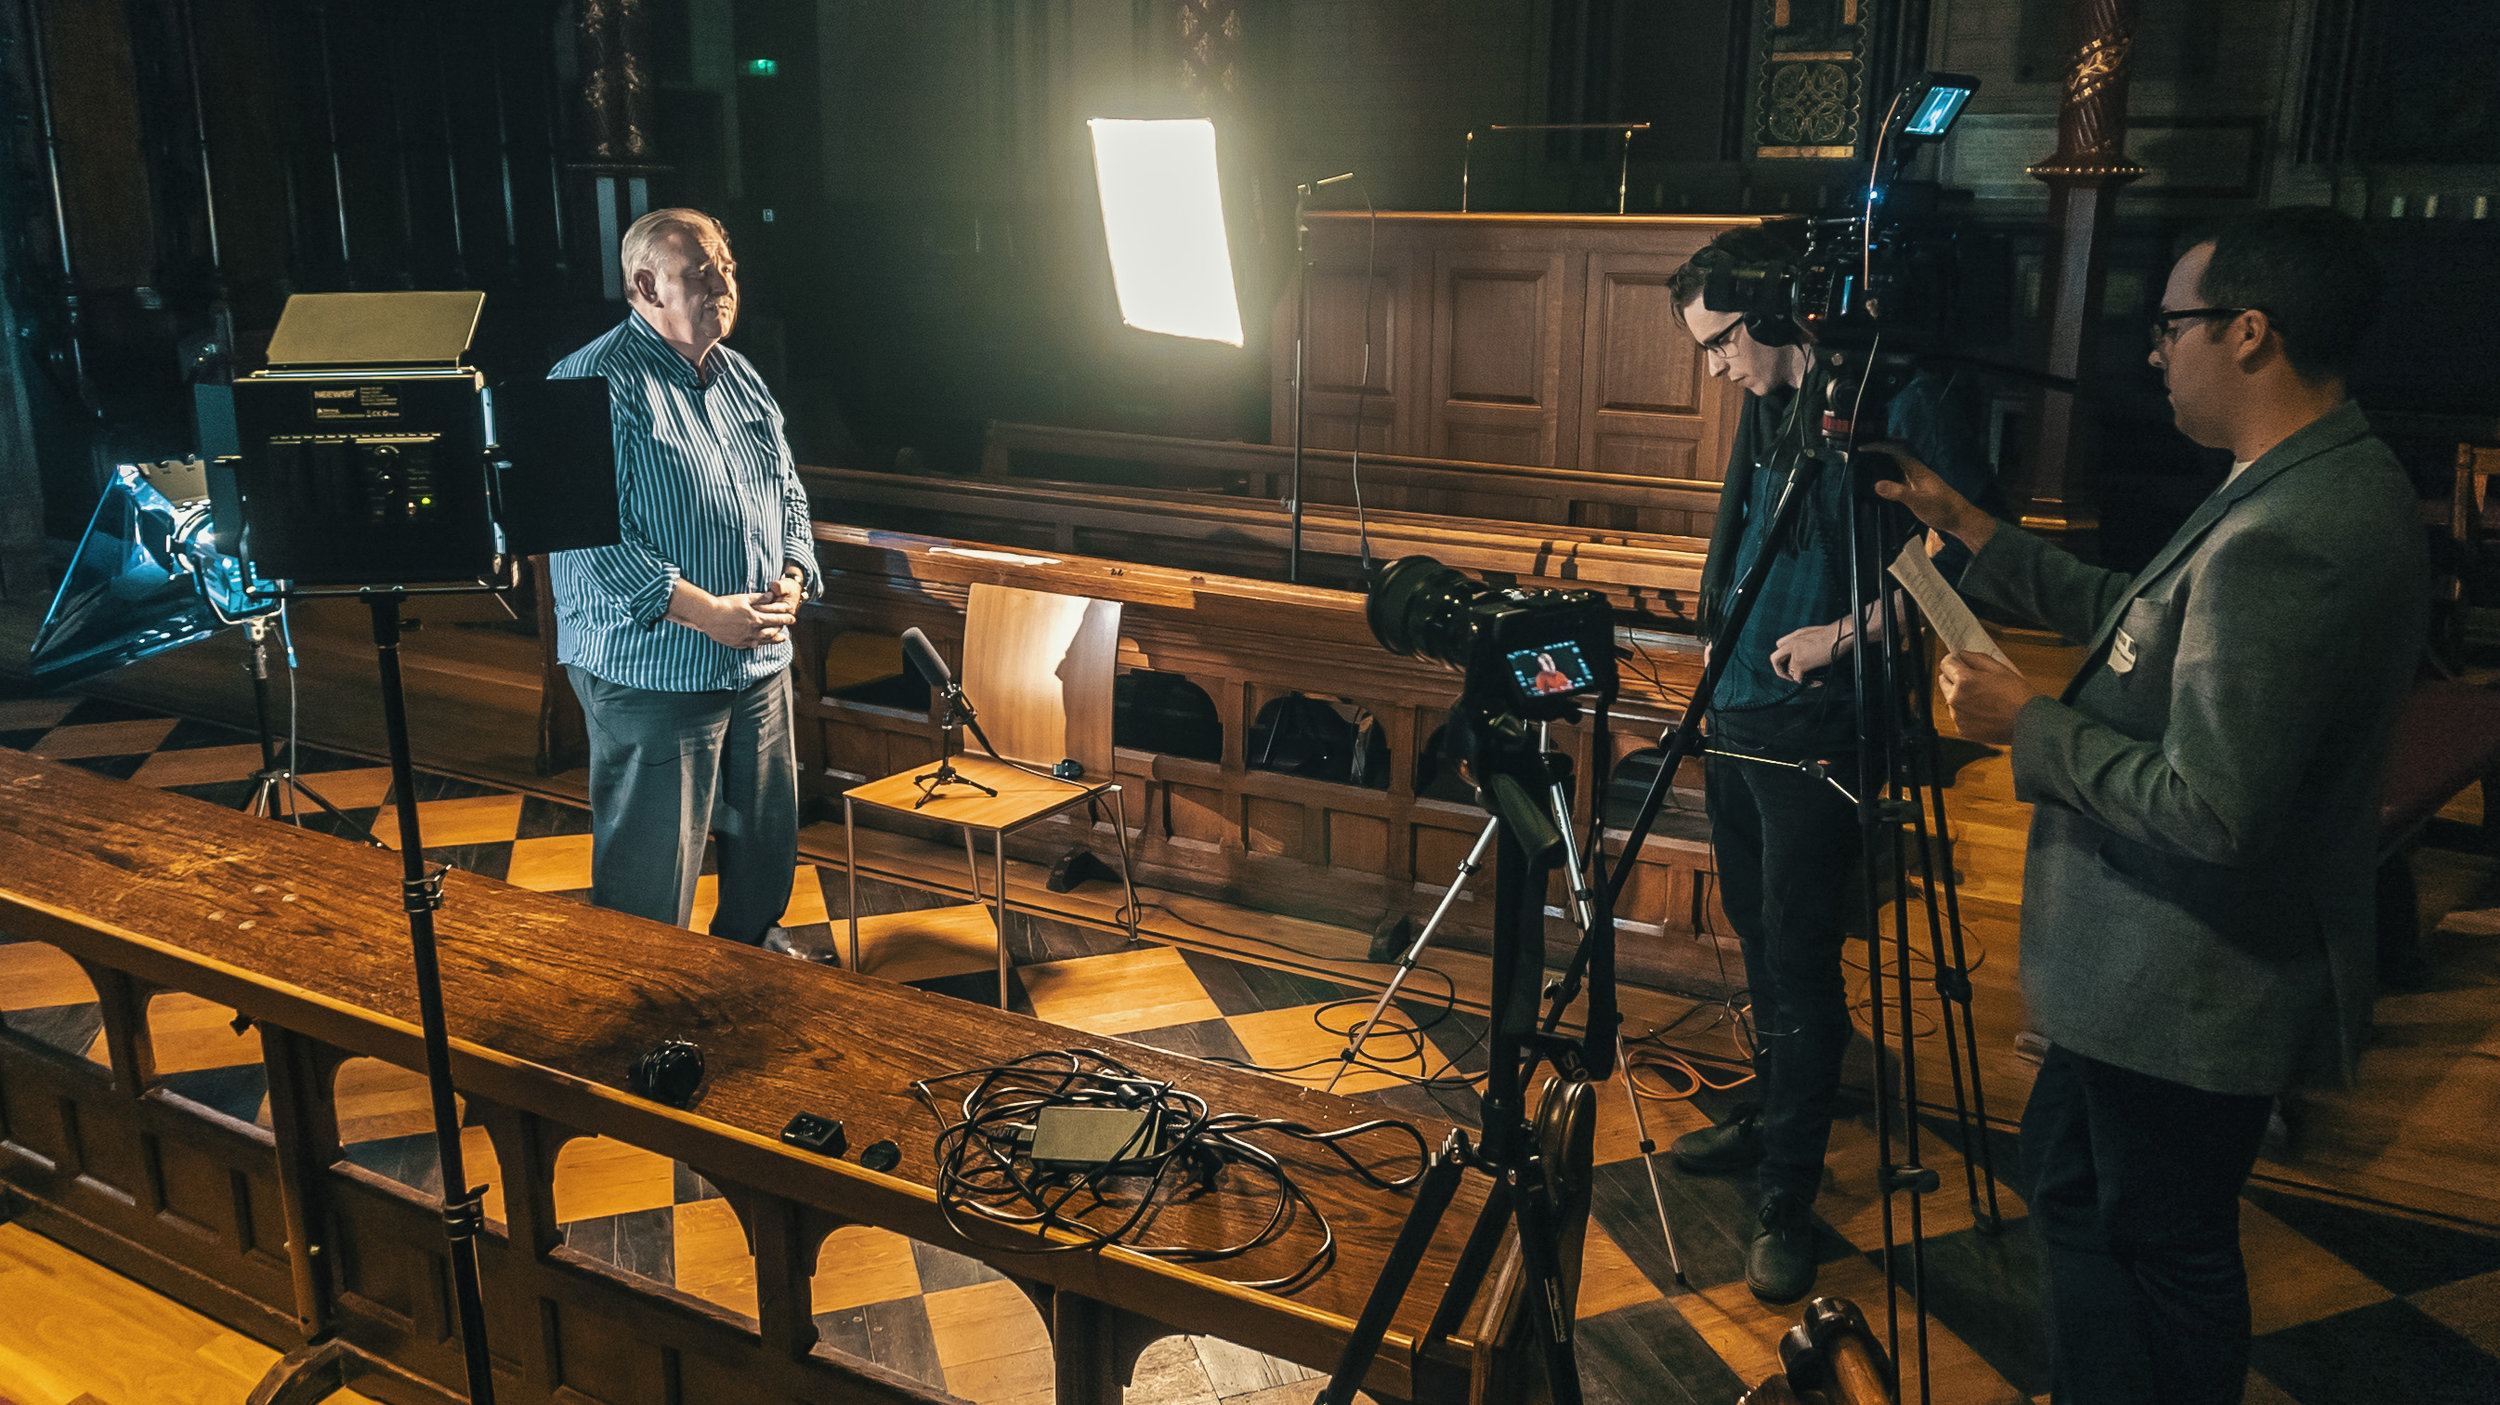 Shooting a promo film for the British Neuroscience Association at King's College London